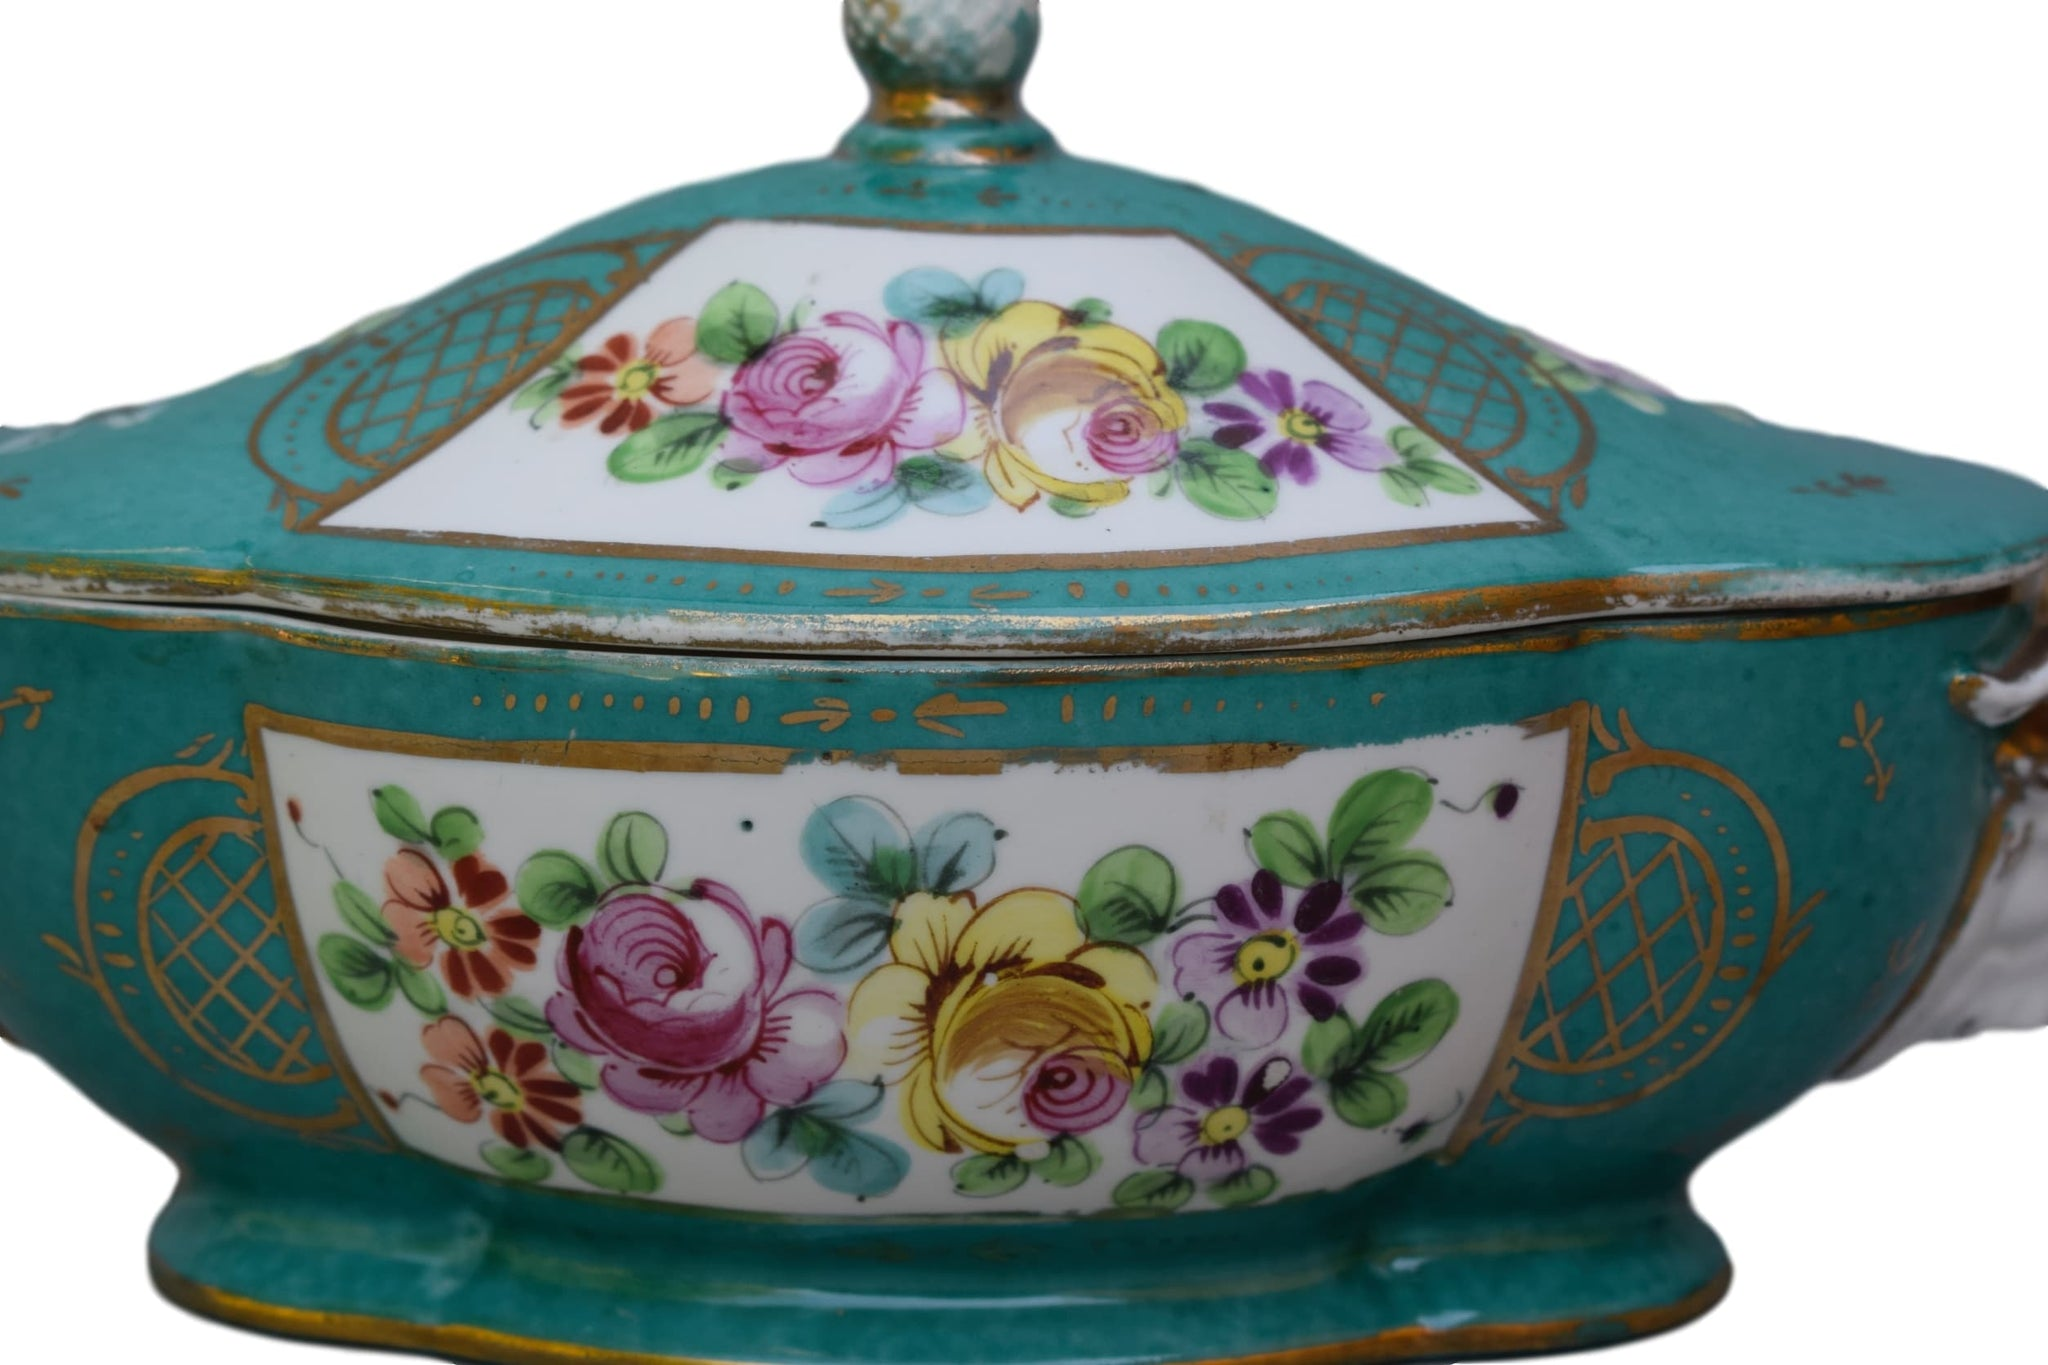 French Antique Hand Painted Meissen Style Porcelain Box - Floral Tureen Vejetable Dish - Ram Head Face Decor Handle - Chic Tableware